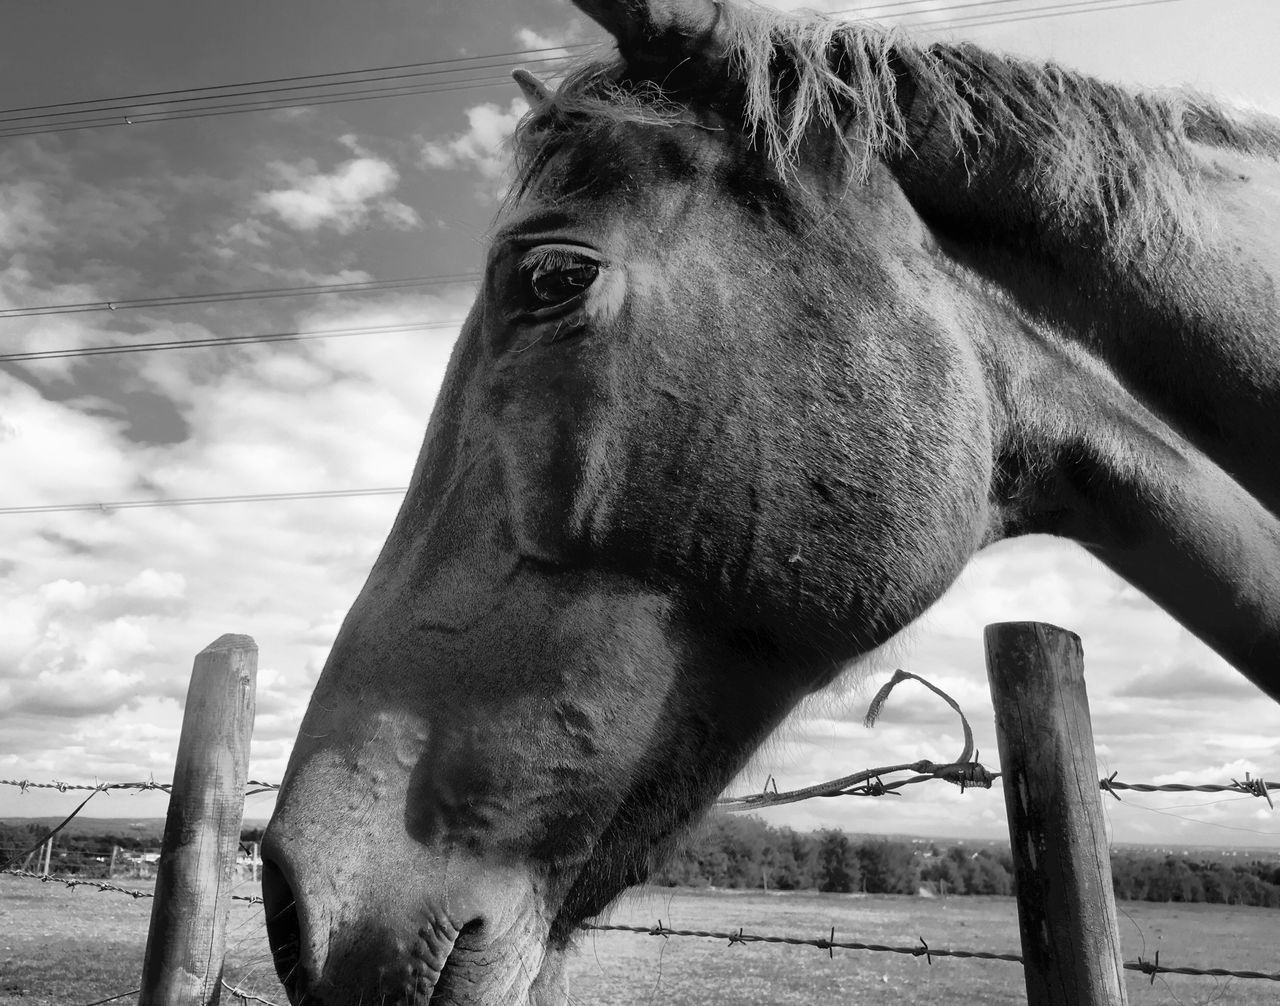 #horse #blackandwhite #barrbeacon #taken #on #my #iphone6splus by @jg.photography.official Horse Animal Themes Animal Head  One Animal Close-up Animal Body Part Herbivorous Side View Domestic Animals Livestock Sky Mammal Focus On Foreground Zoology Day Cloud - Sky Outdoors Animal Pasture Snout IPhoneography